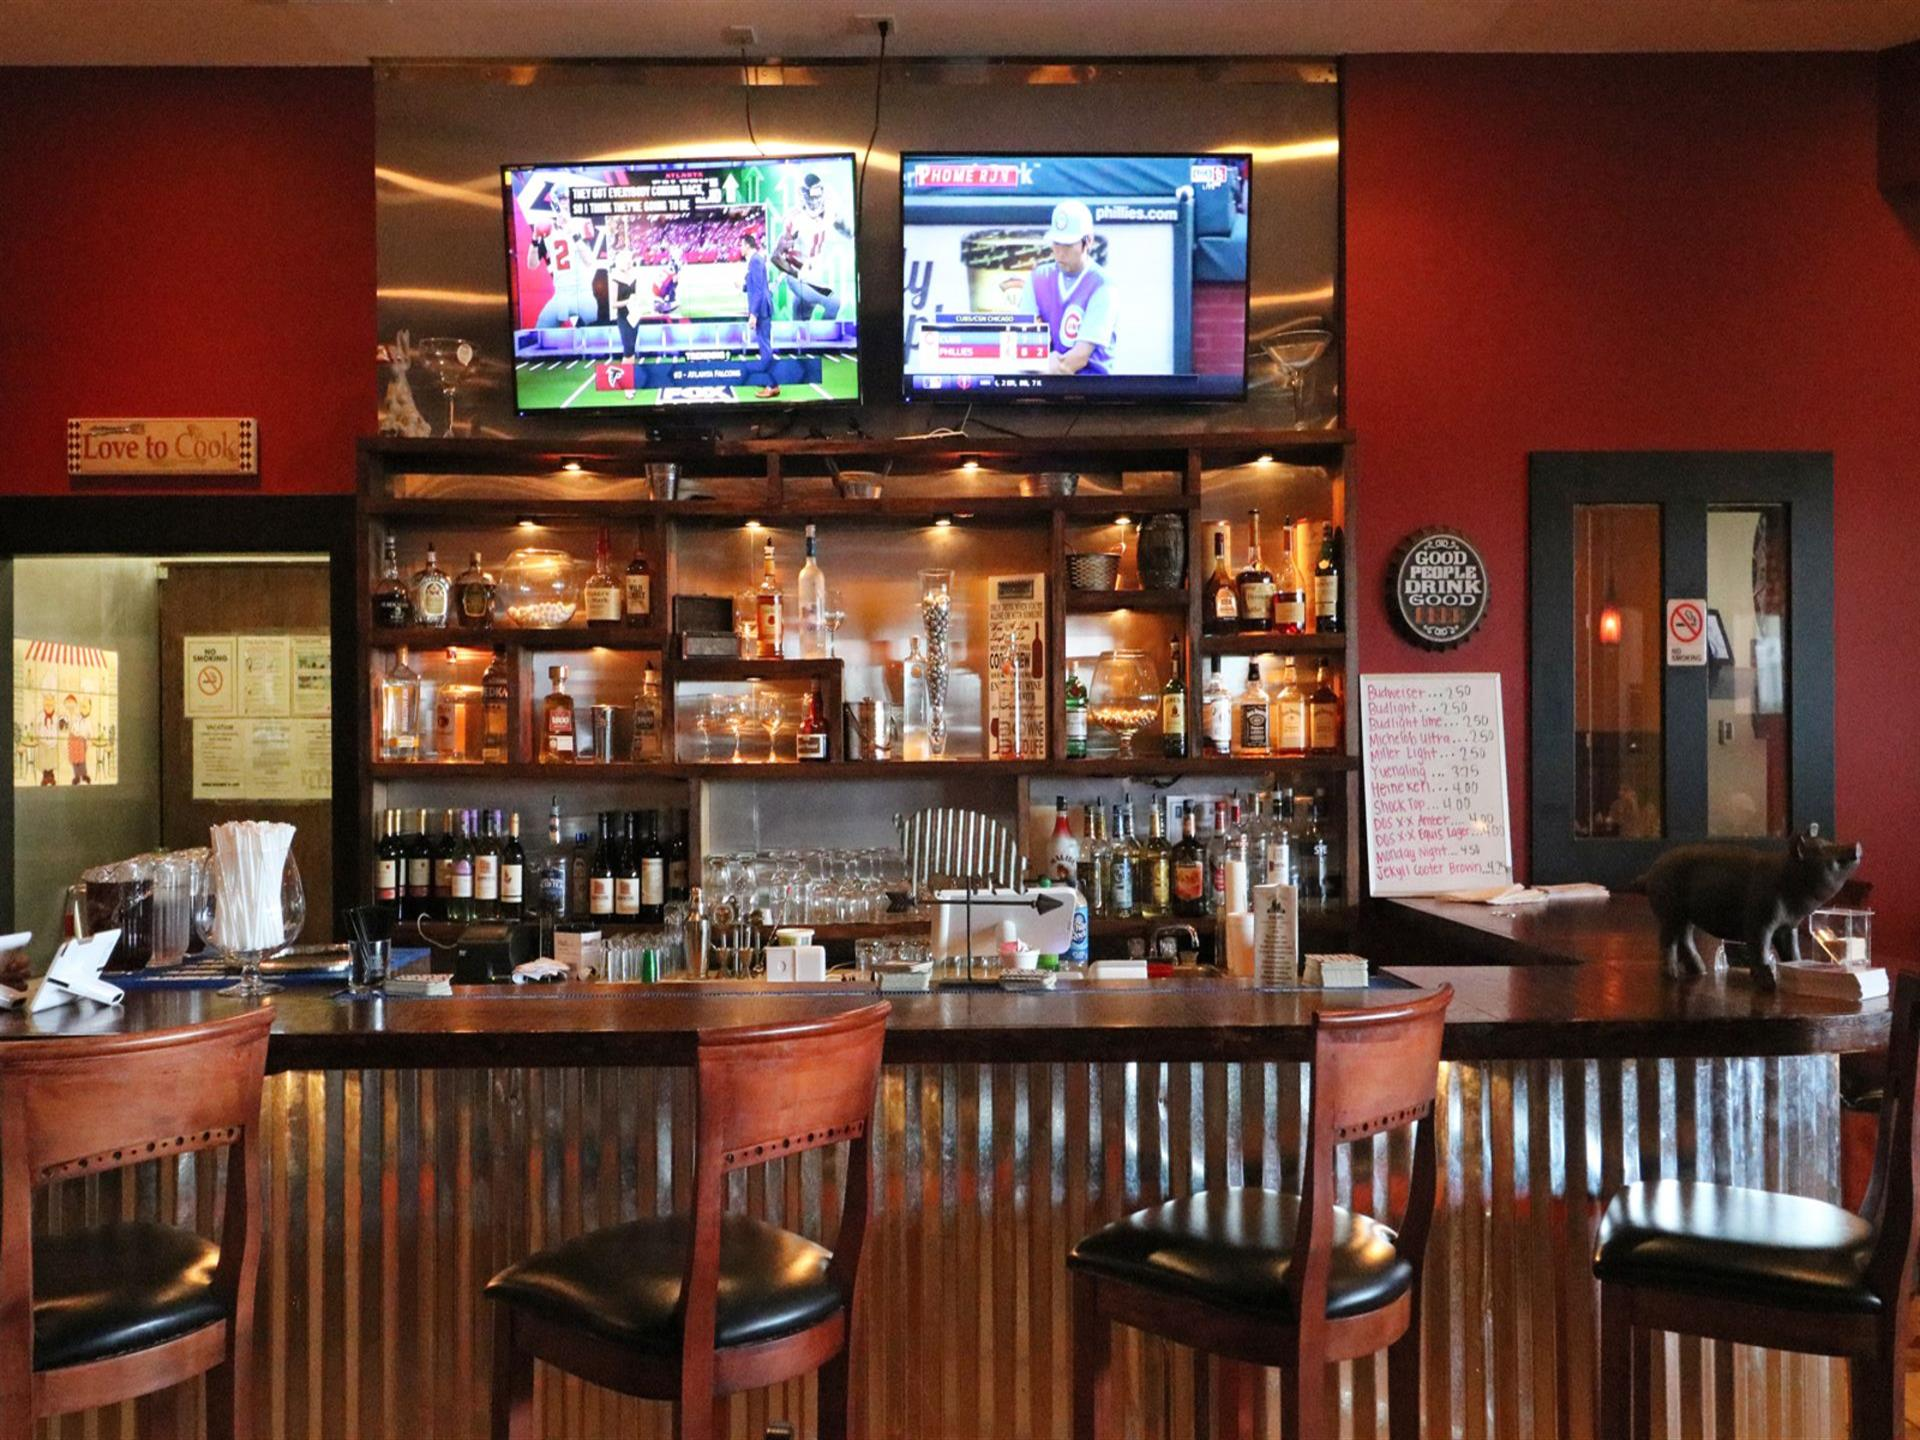 Interior bar area with chairs by a bar-top and assorted bottles on shelves behind a bar with two TVs on a wall